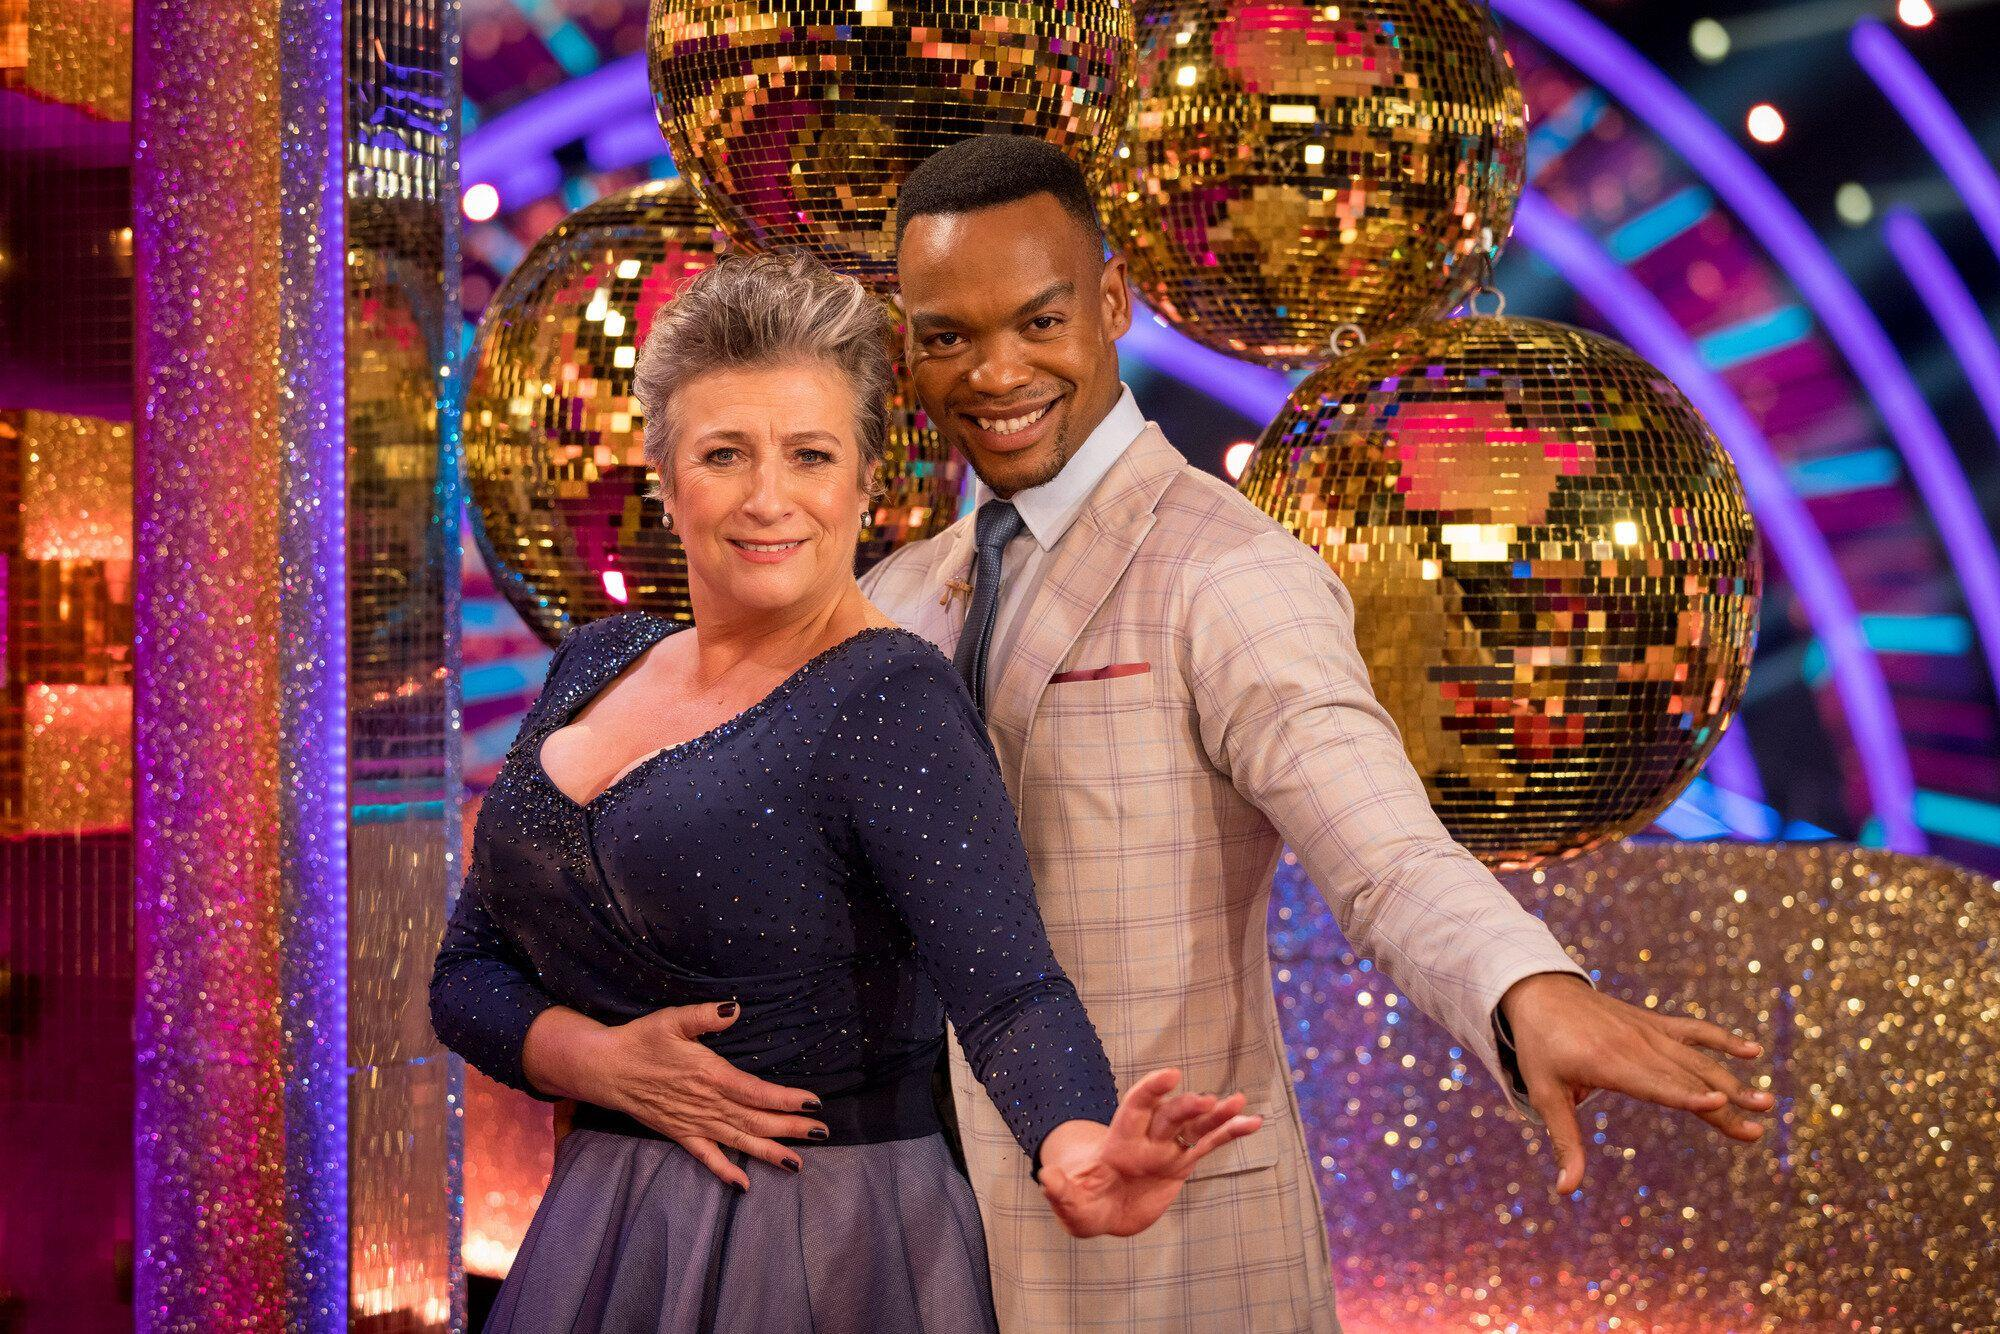 Caroline Quentin Admits She And Partner Johannes Radebe Have Had Their First Strictly Row